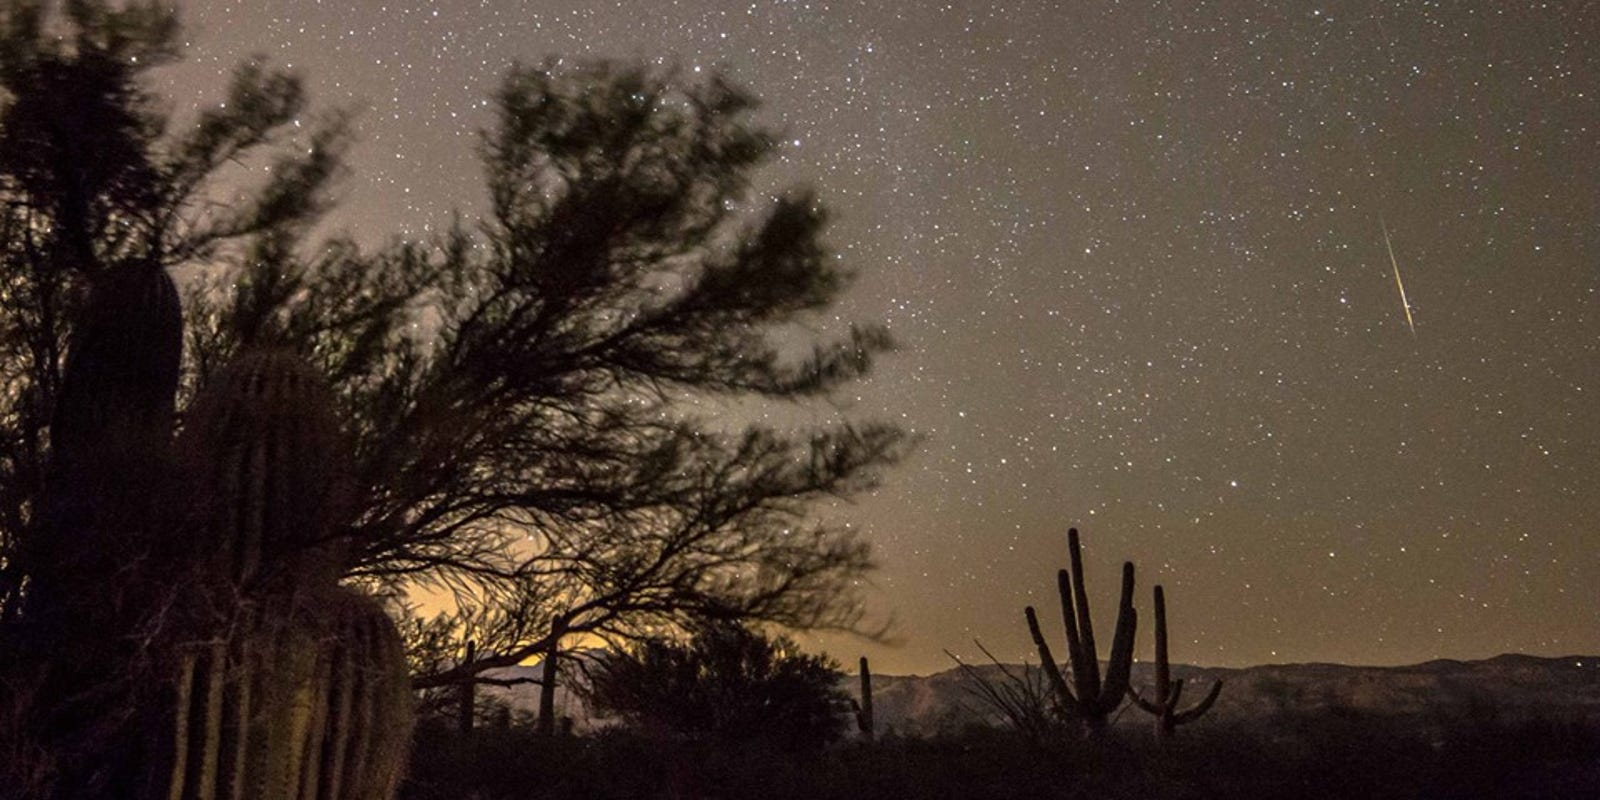 This year's Orionids meteor shower is coming up. Here's when to see it